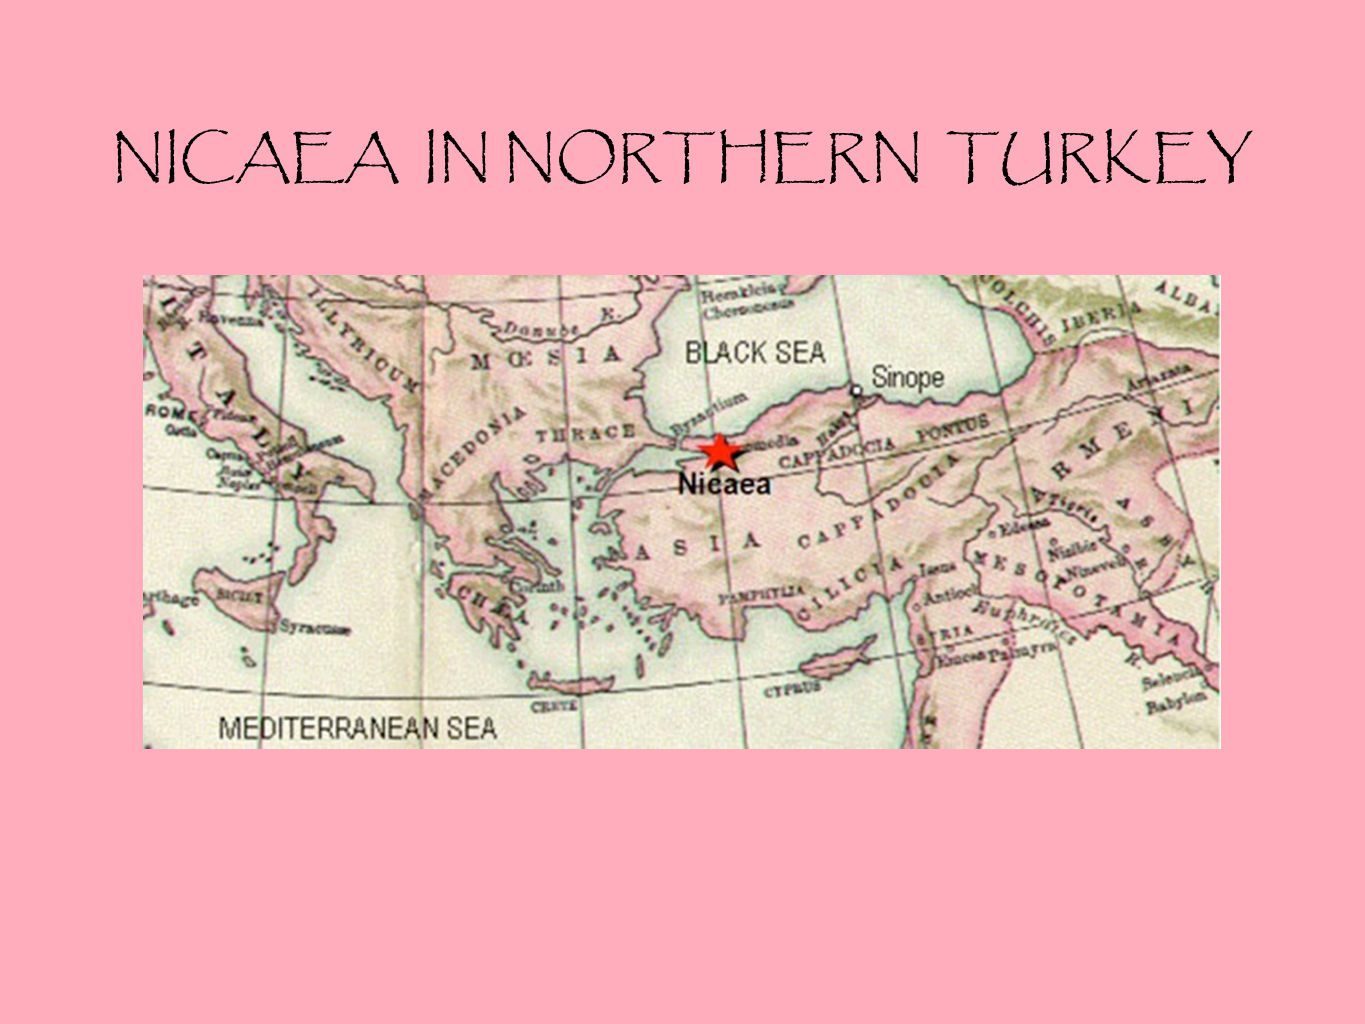 NICAEA IN NORTHERN TURKEY